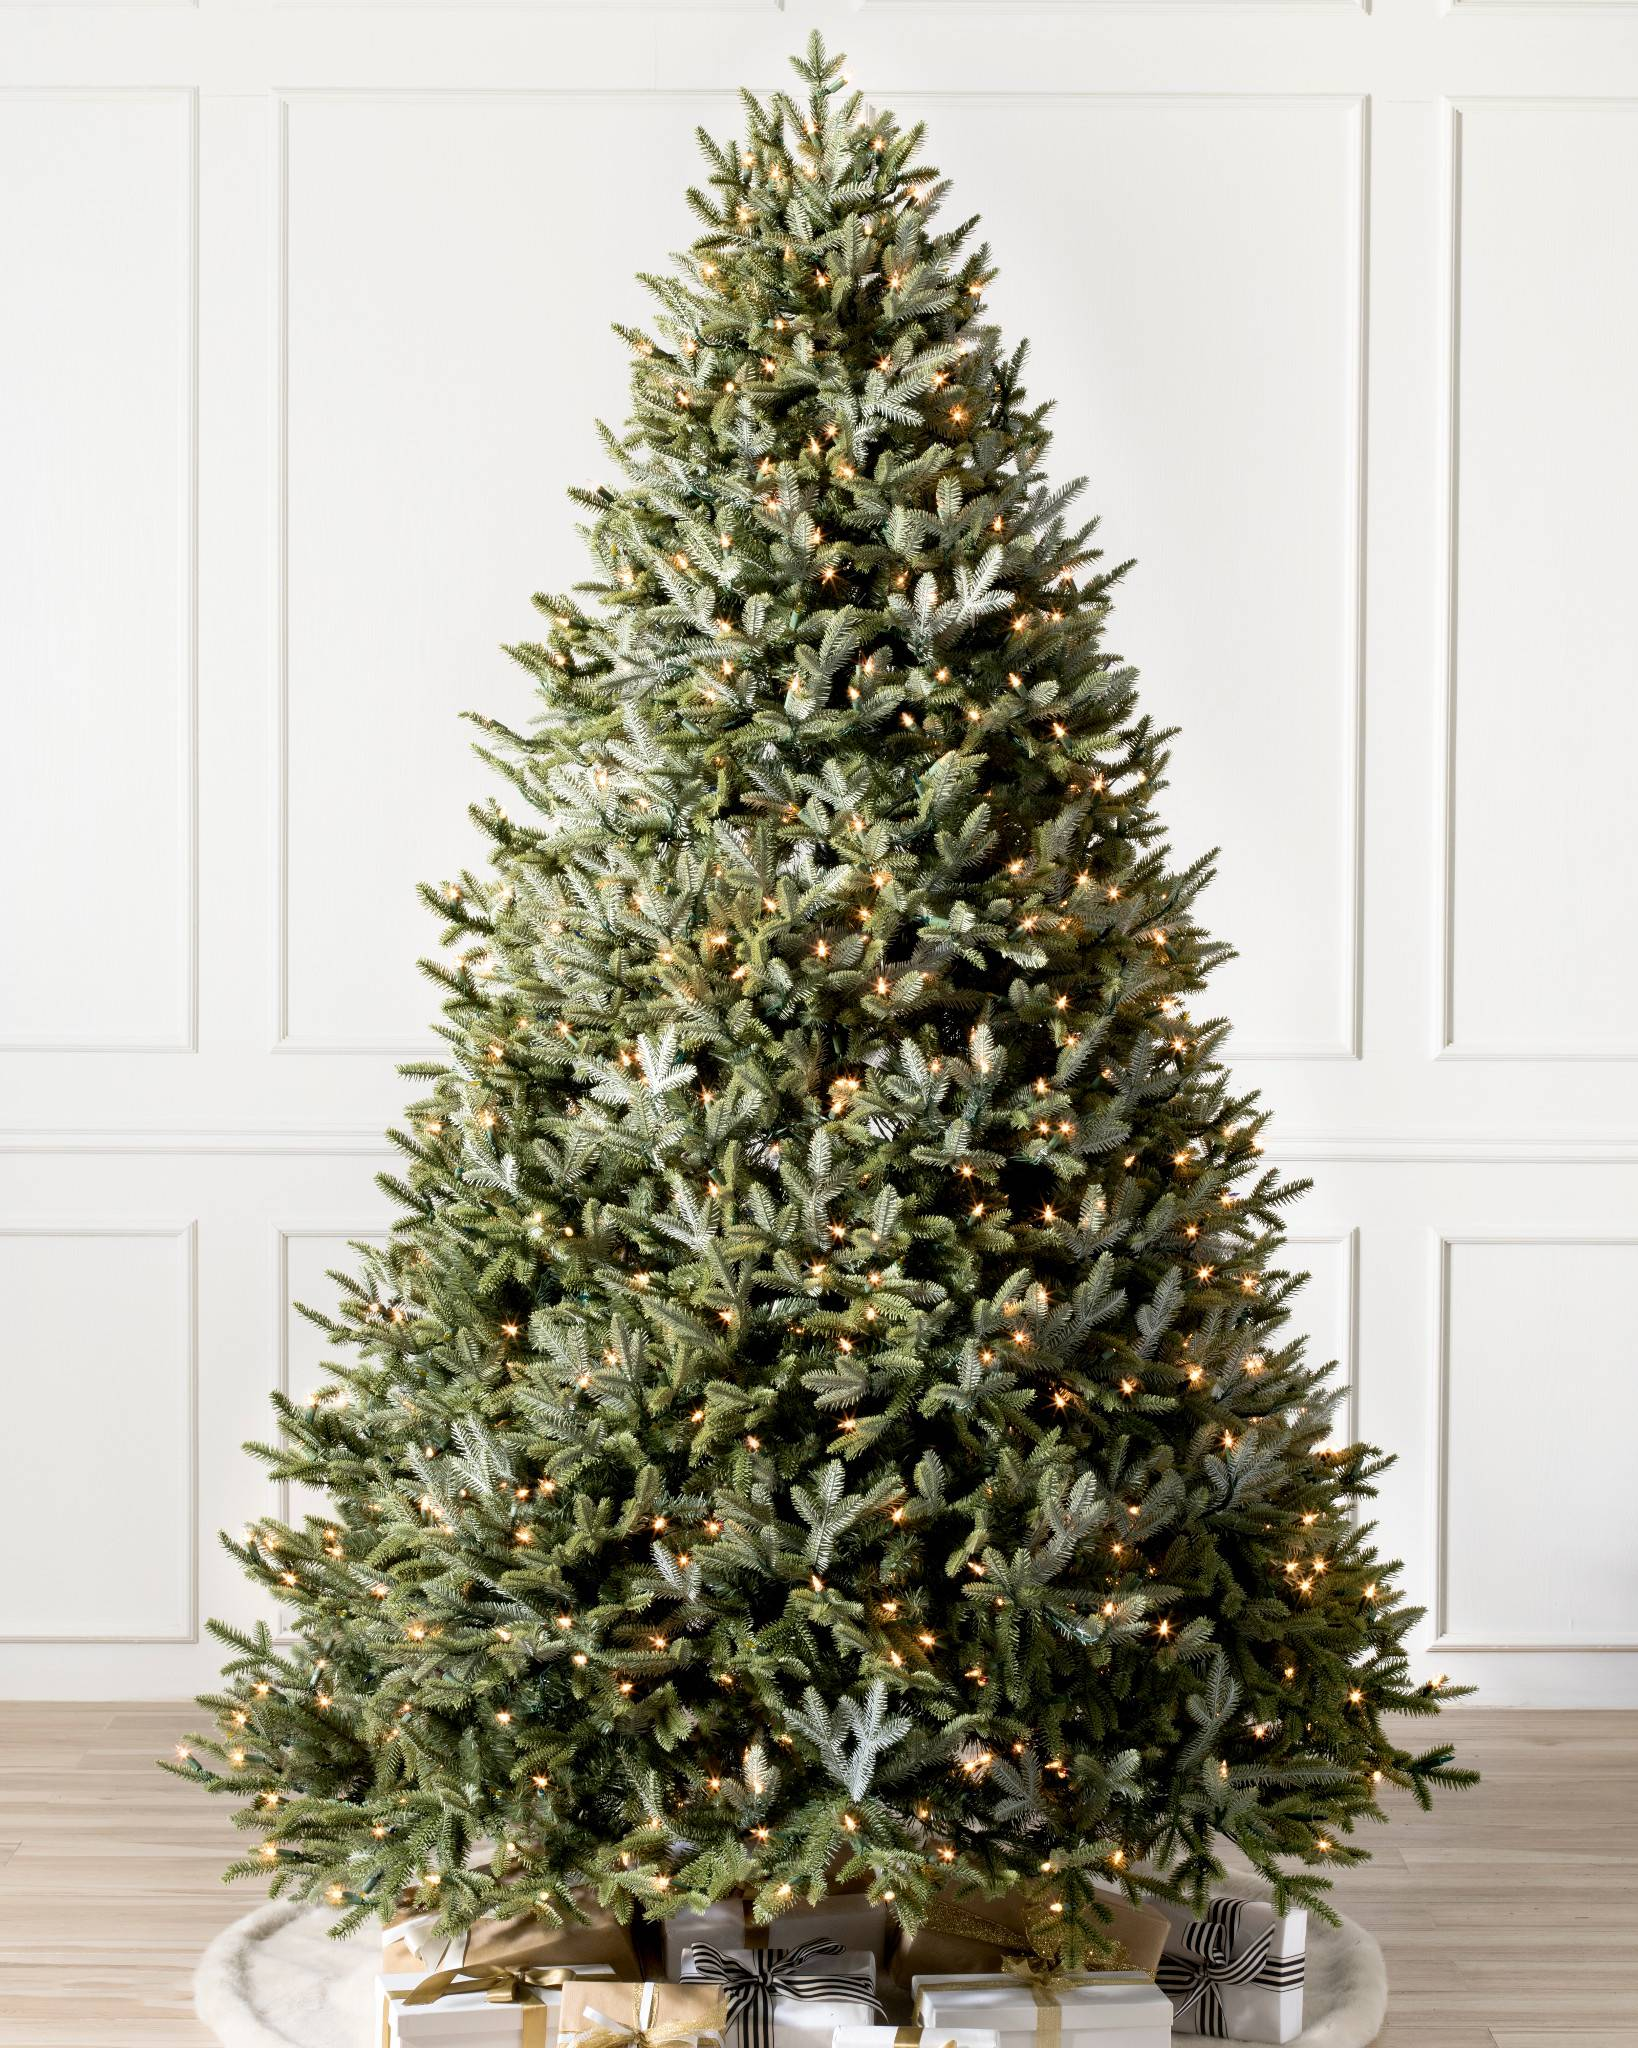 traditional artificial christmas trees reset filters bh fraser fir tree 1 - Full Artificial Christmas Trees